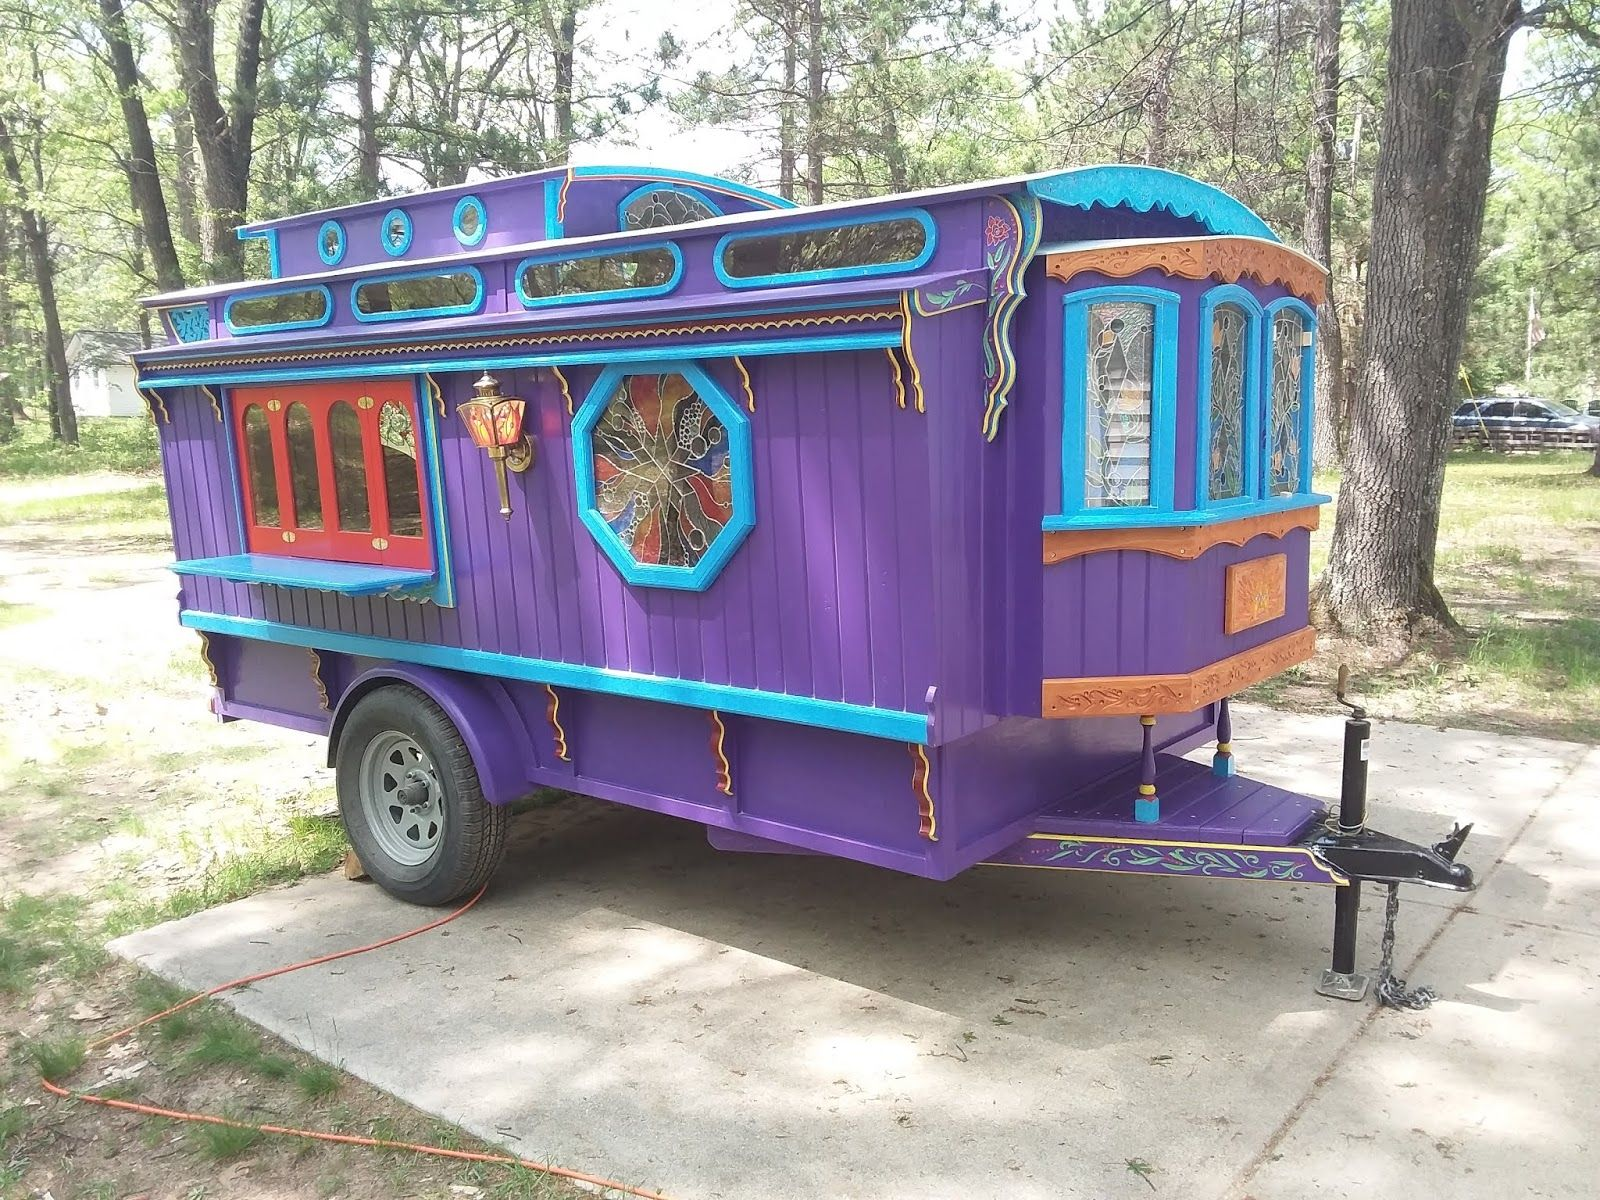 30 Creative Photo Of Gypsy Camper Ideas The Initial One Might Be